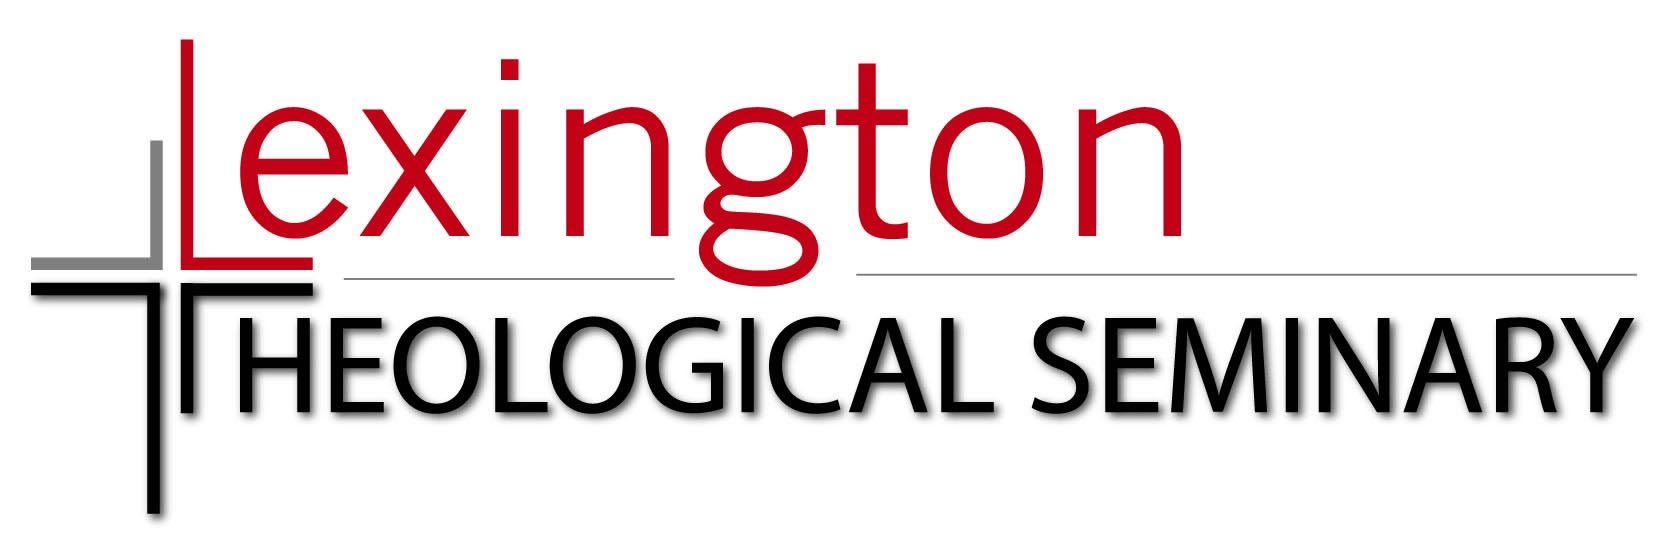 Lexington Theological Seminary logo